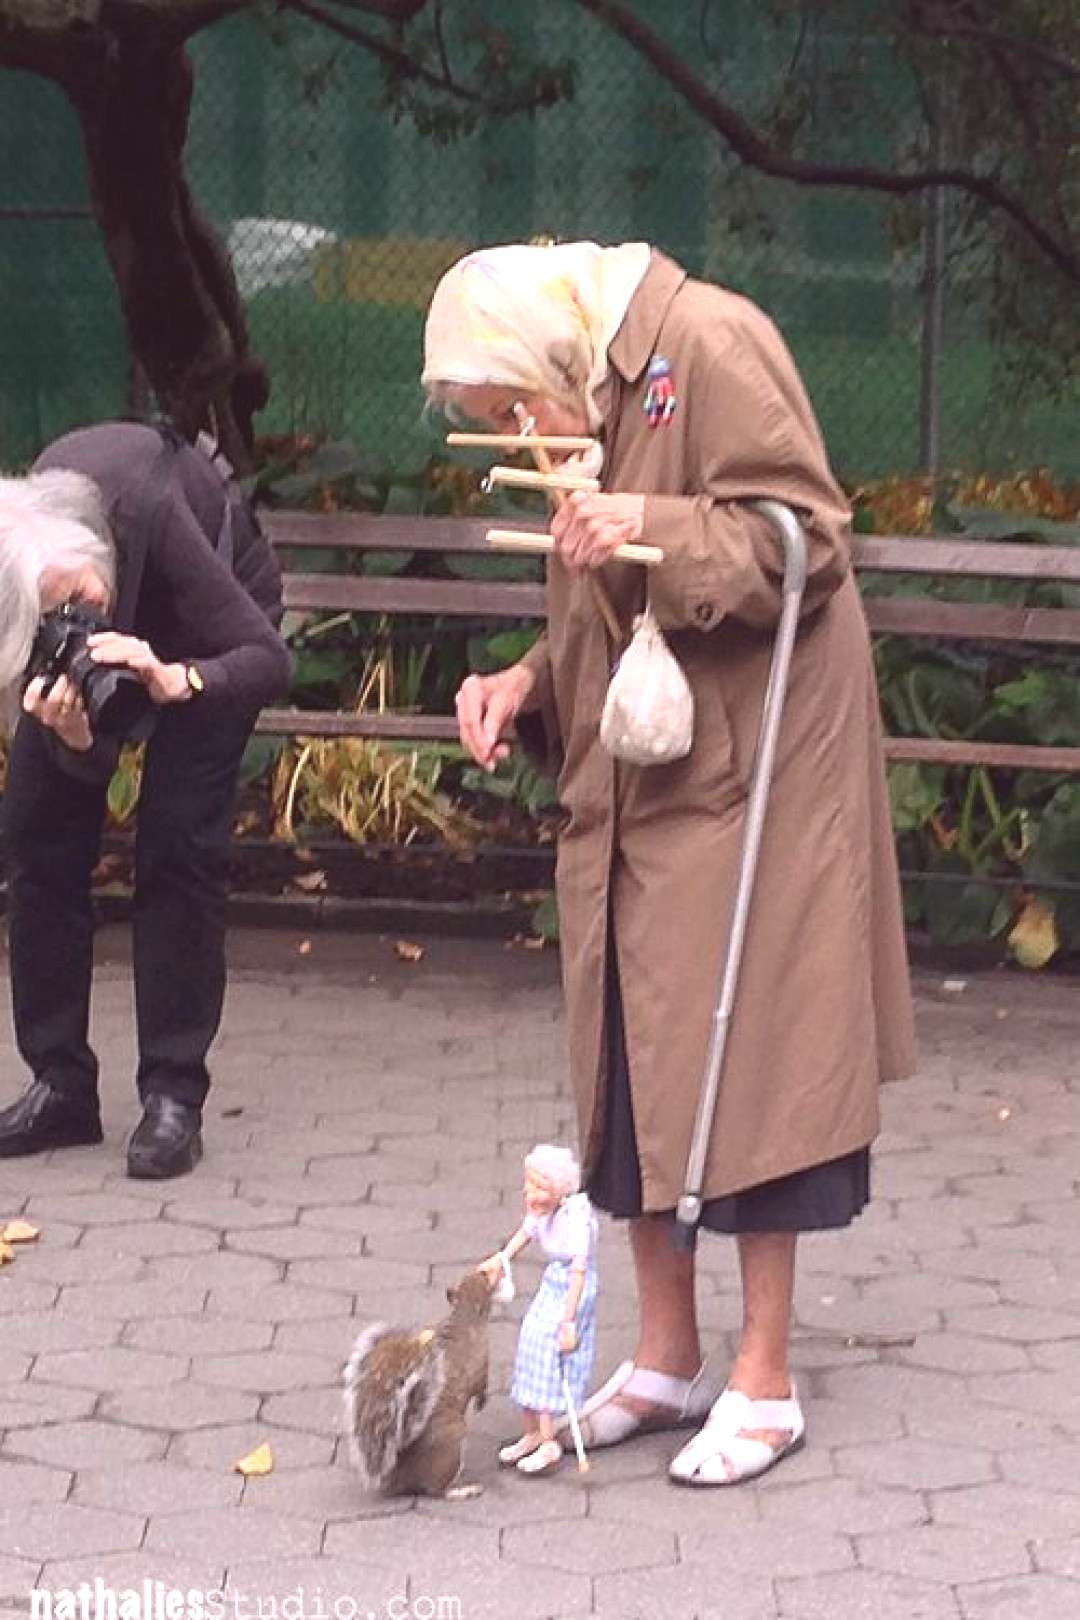 This Grandma Interacts With Squirrels Using A Pint-Sized Version Of Herself! - This Grandma Interac